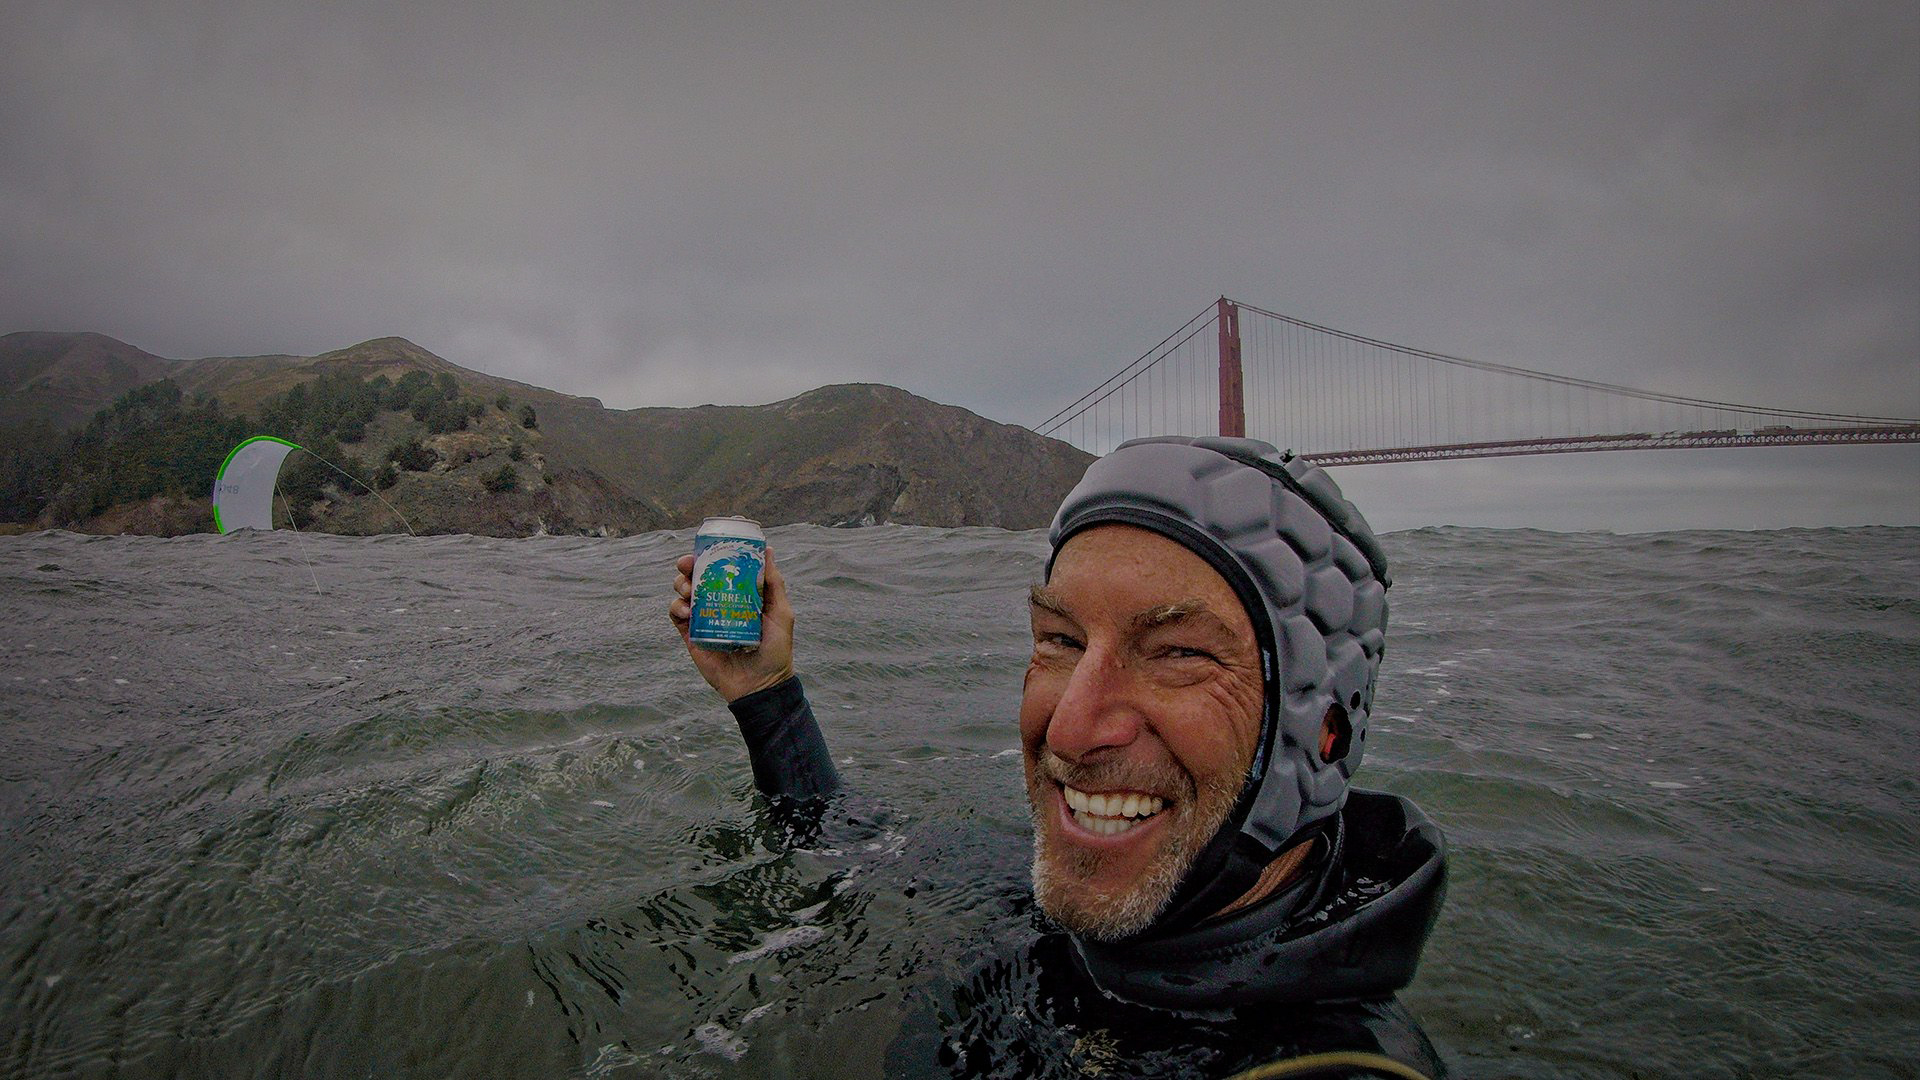 Guy enjoying a non-alcoholic beer with the golden gate bridge in background